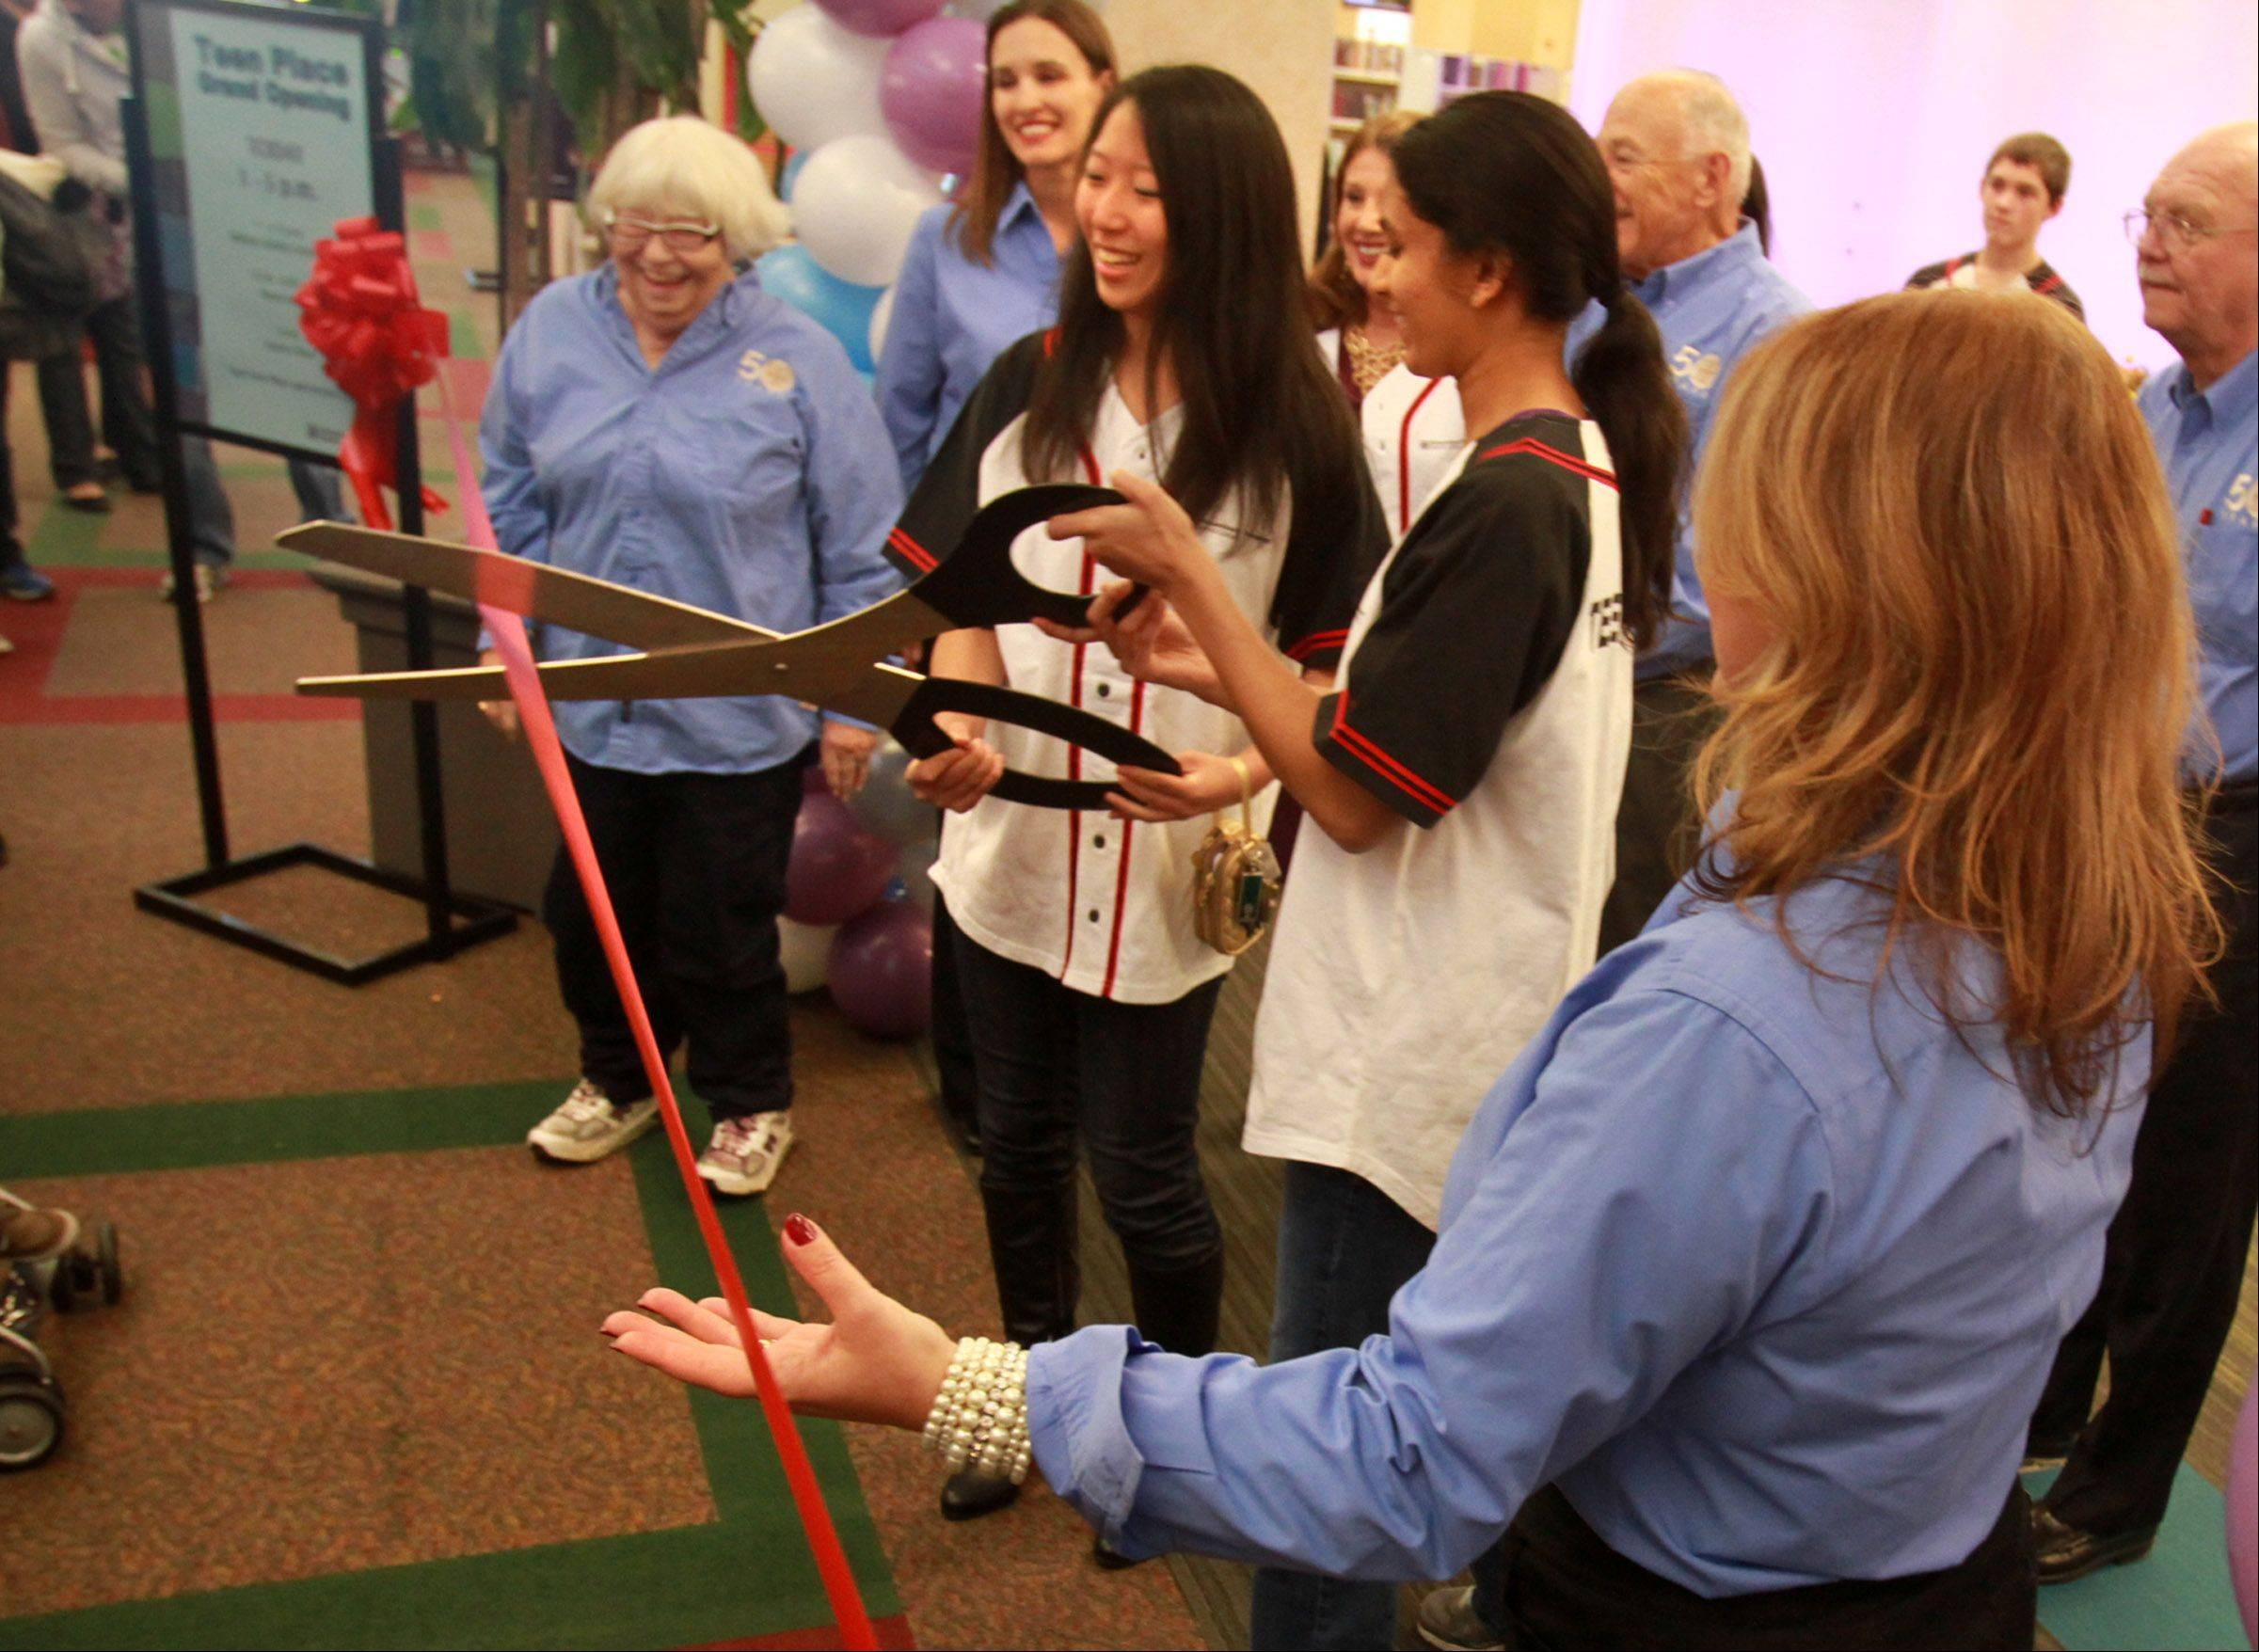 Meran Liu and Avni Baviski, both 18 of Hoffman Estates, cut the ribbon during the grand opening Saturday for the Schaumburg Township District Library's Teen Place inside the library in Schaumburg.